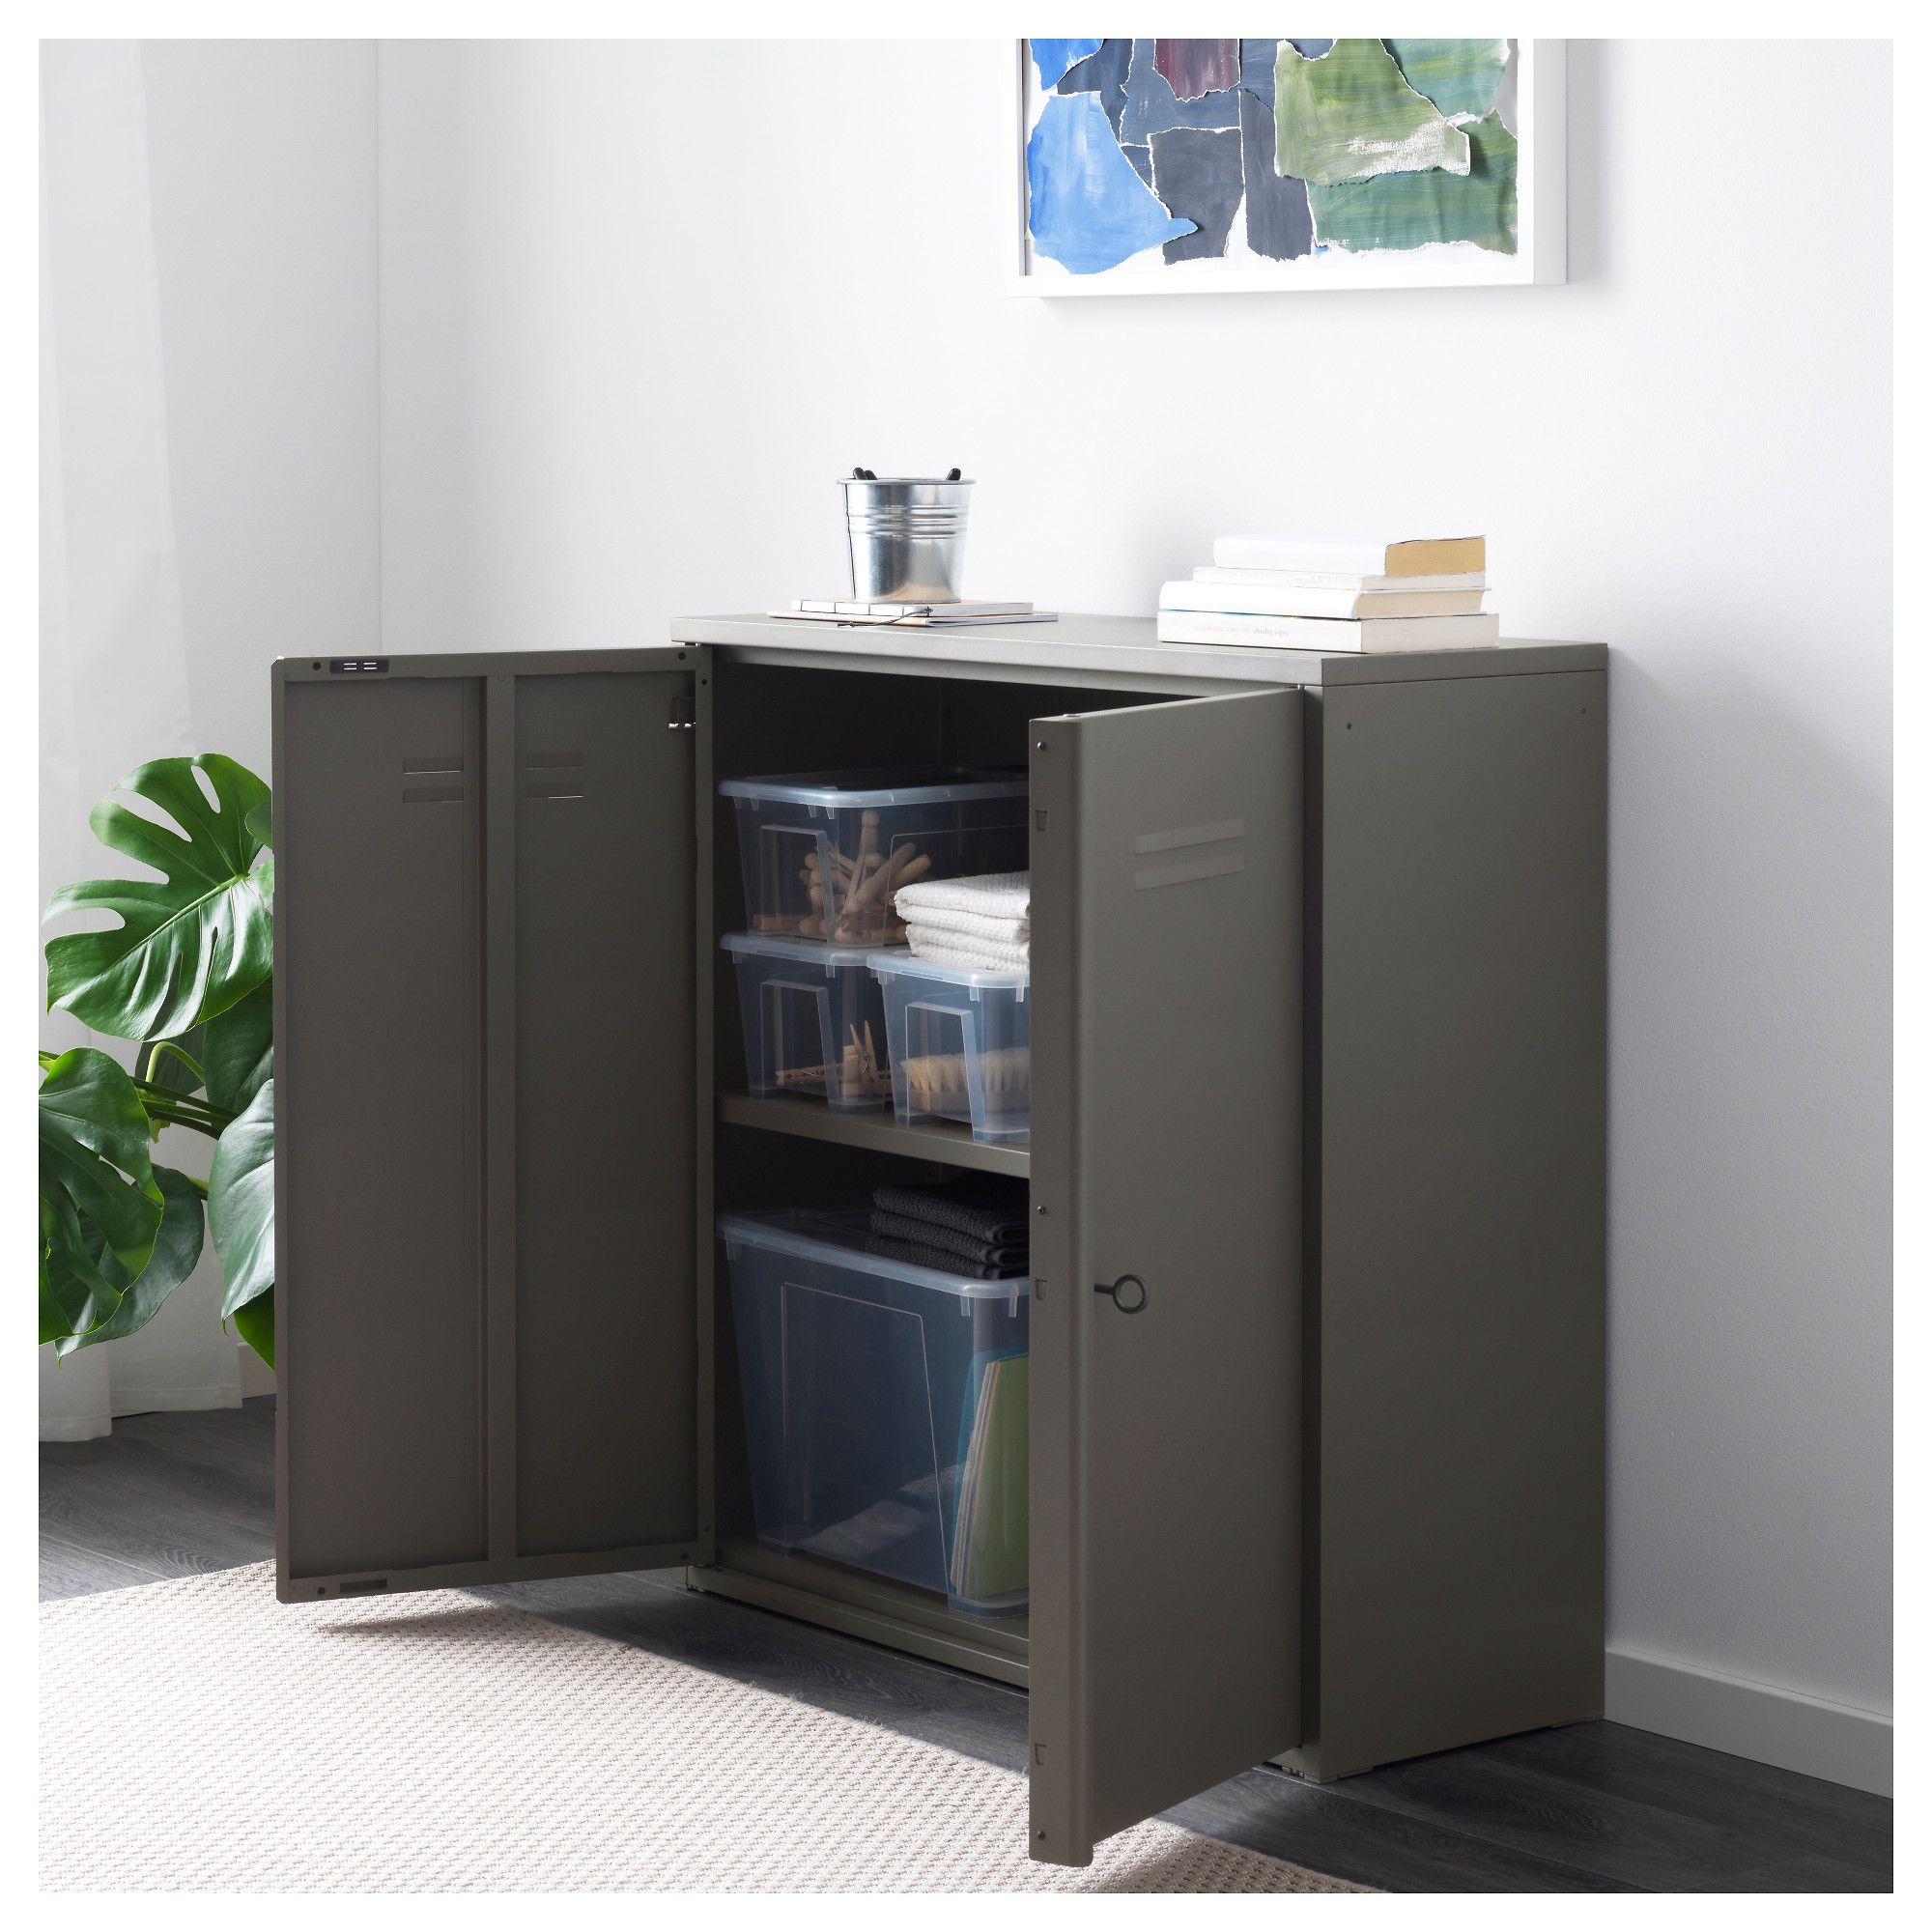 Ikea Ivar Cabinet With Doors Gray In 2019 Cabinet